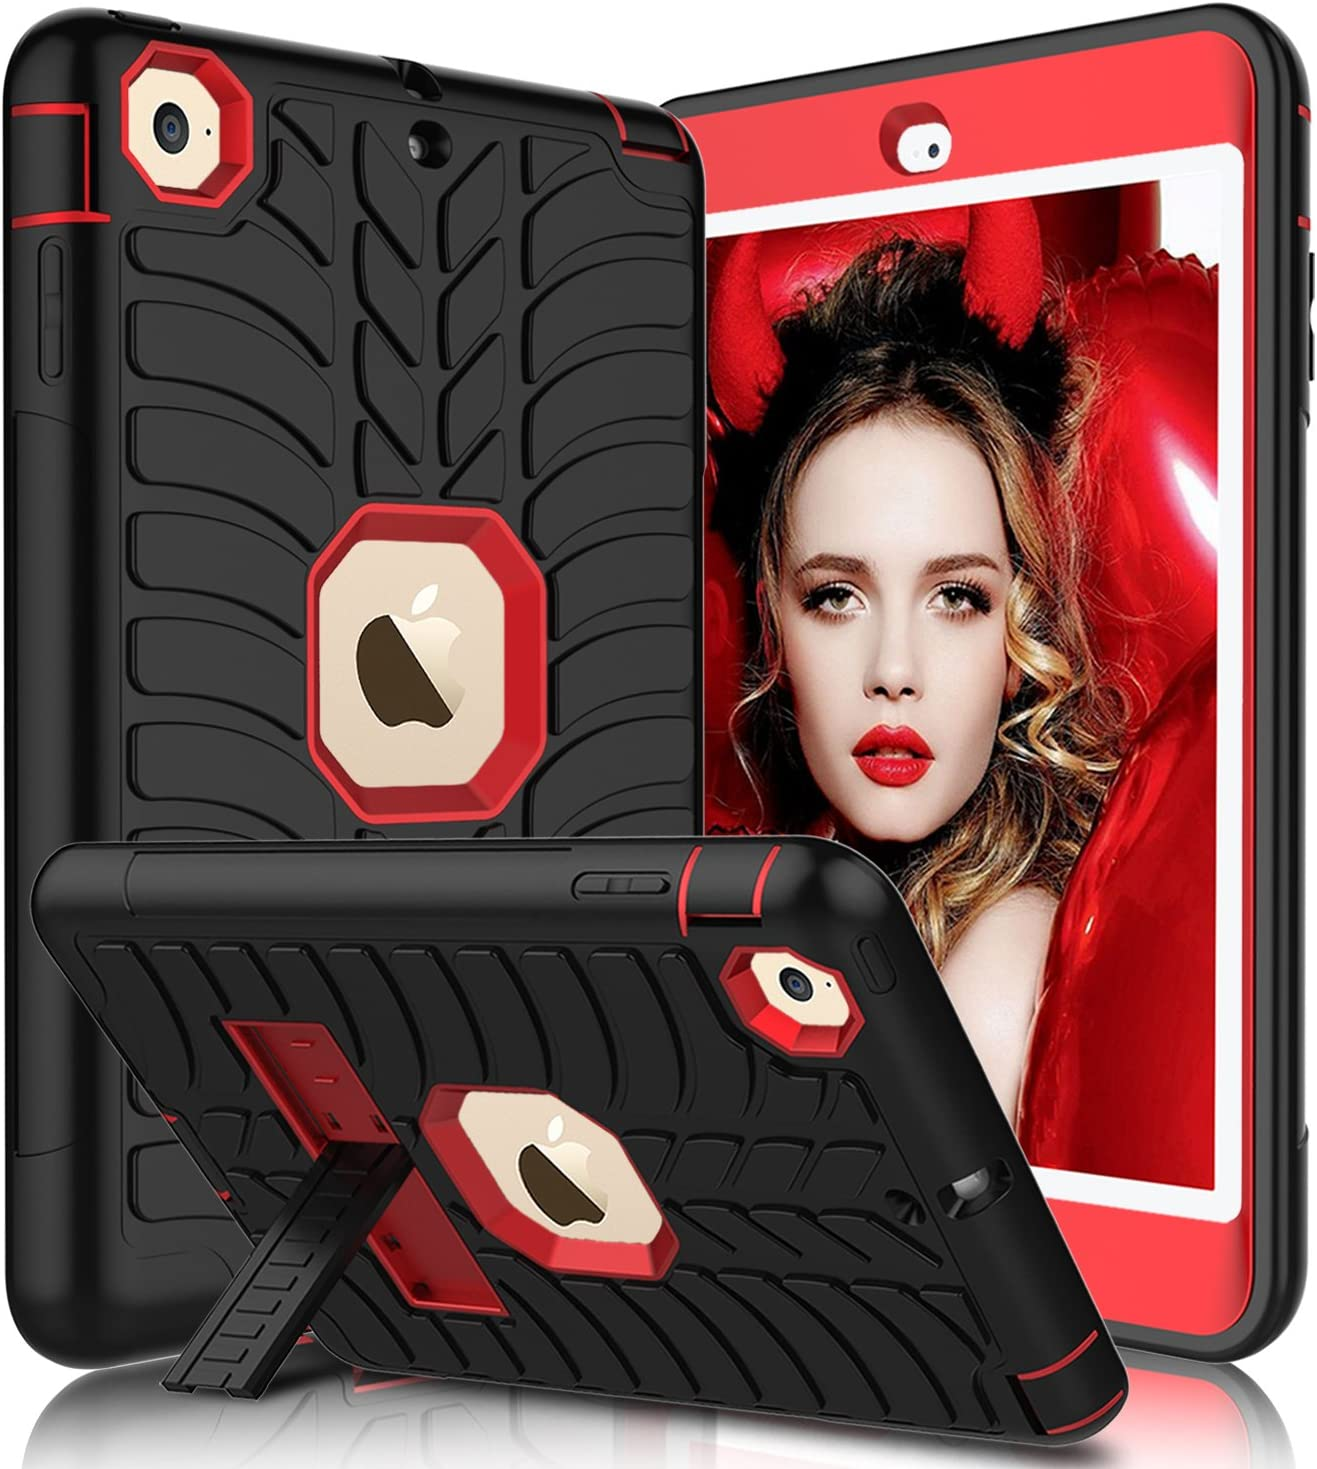 iPad Mini Case, iPad Mini 2 Case, iPad Mini 3 Case, iPad Mini Retina Case, Elegant Choise Heavy Duty Three Layer Armor Defender Protective Case with Kickstand for iPad Mini 1/2 / 3 (Red)